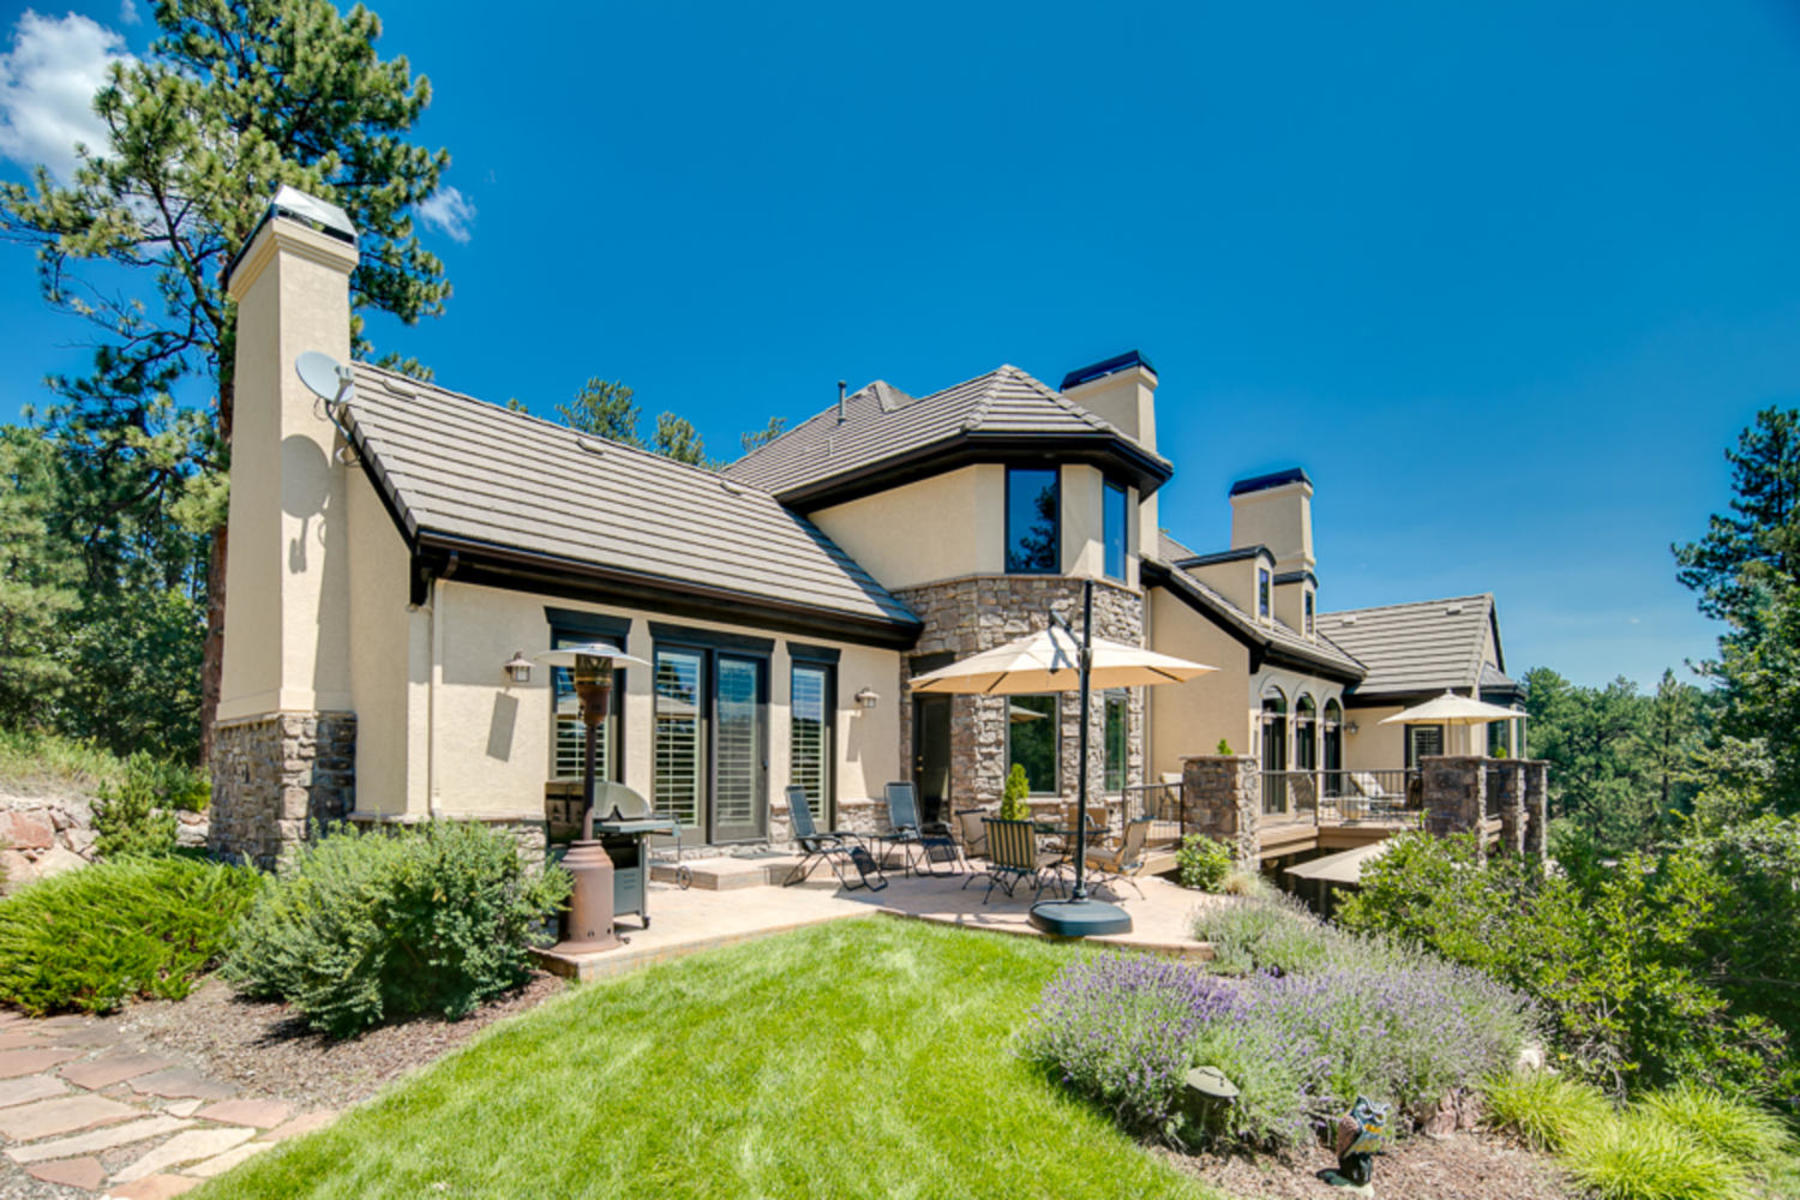 Single Family Homes for Active at Sophisticated design & timeless elegance in this mountain hideaway. 228 Hidden Valley Ln Castle Rock, Colorado 80108 United States